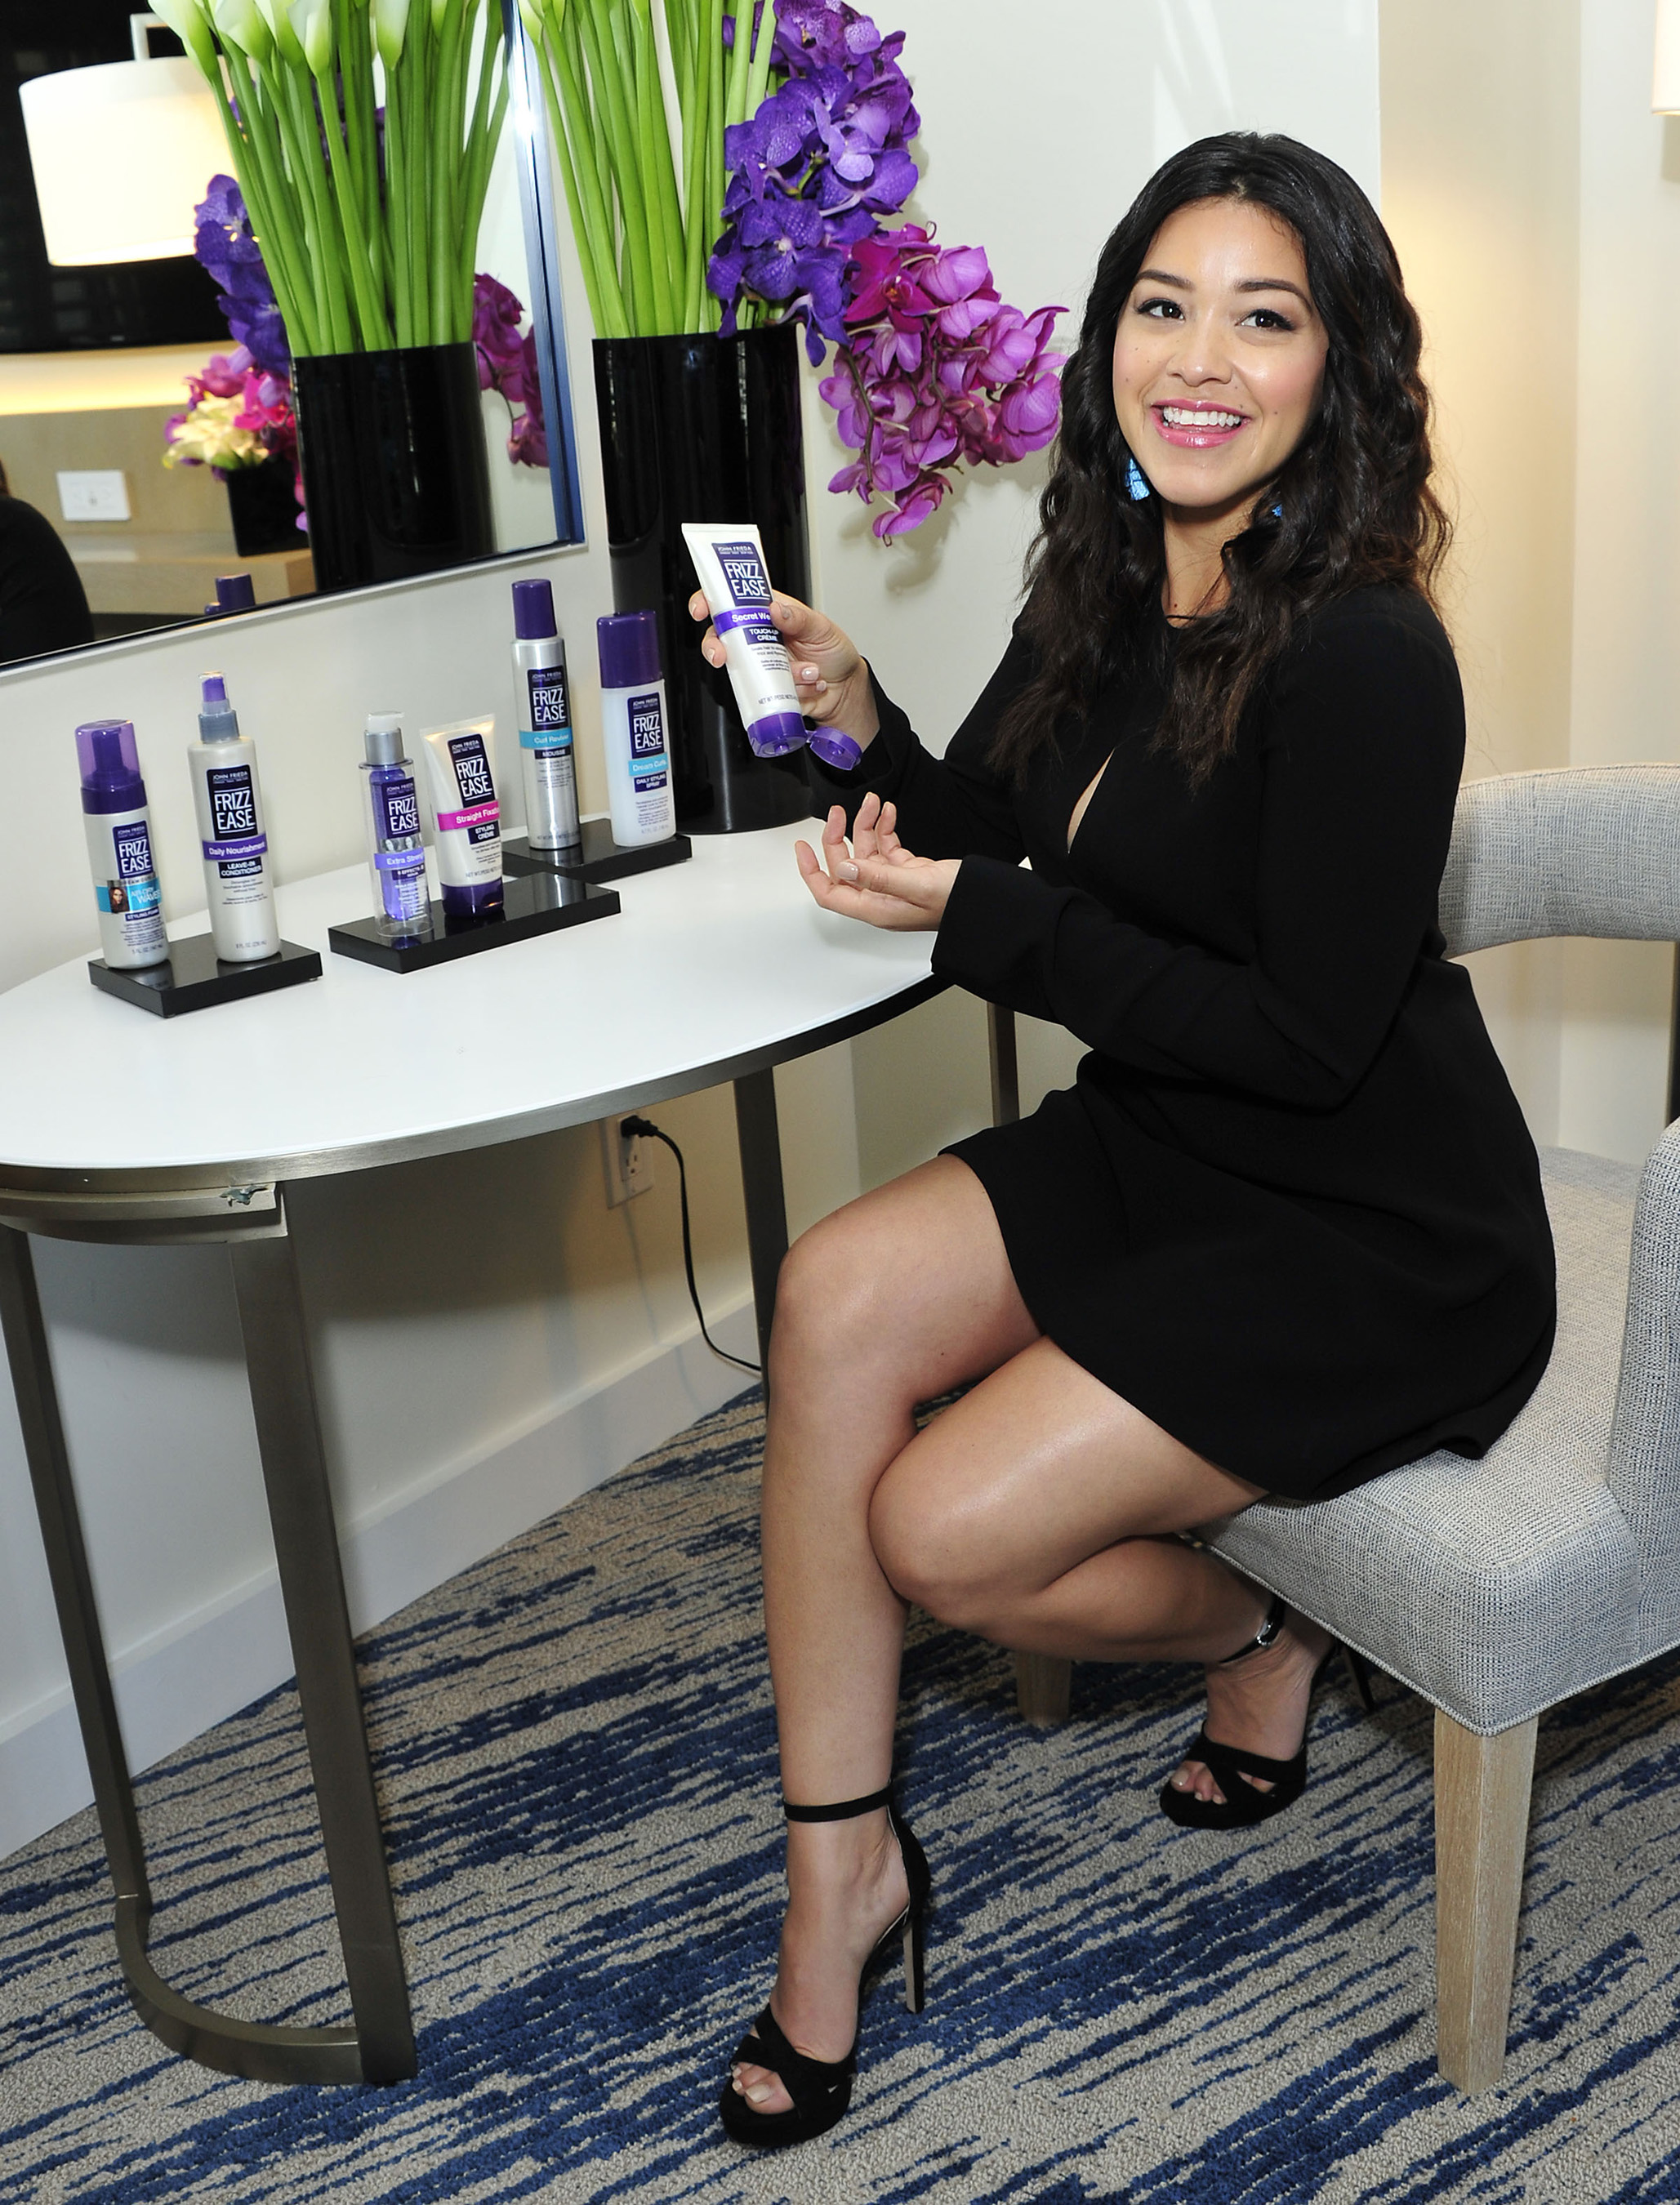 Gina Rodriguez showing off her secret weapon against frizz at a John Frieda Frizz Ease shoot in Los Angeles, California